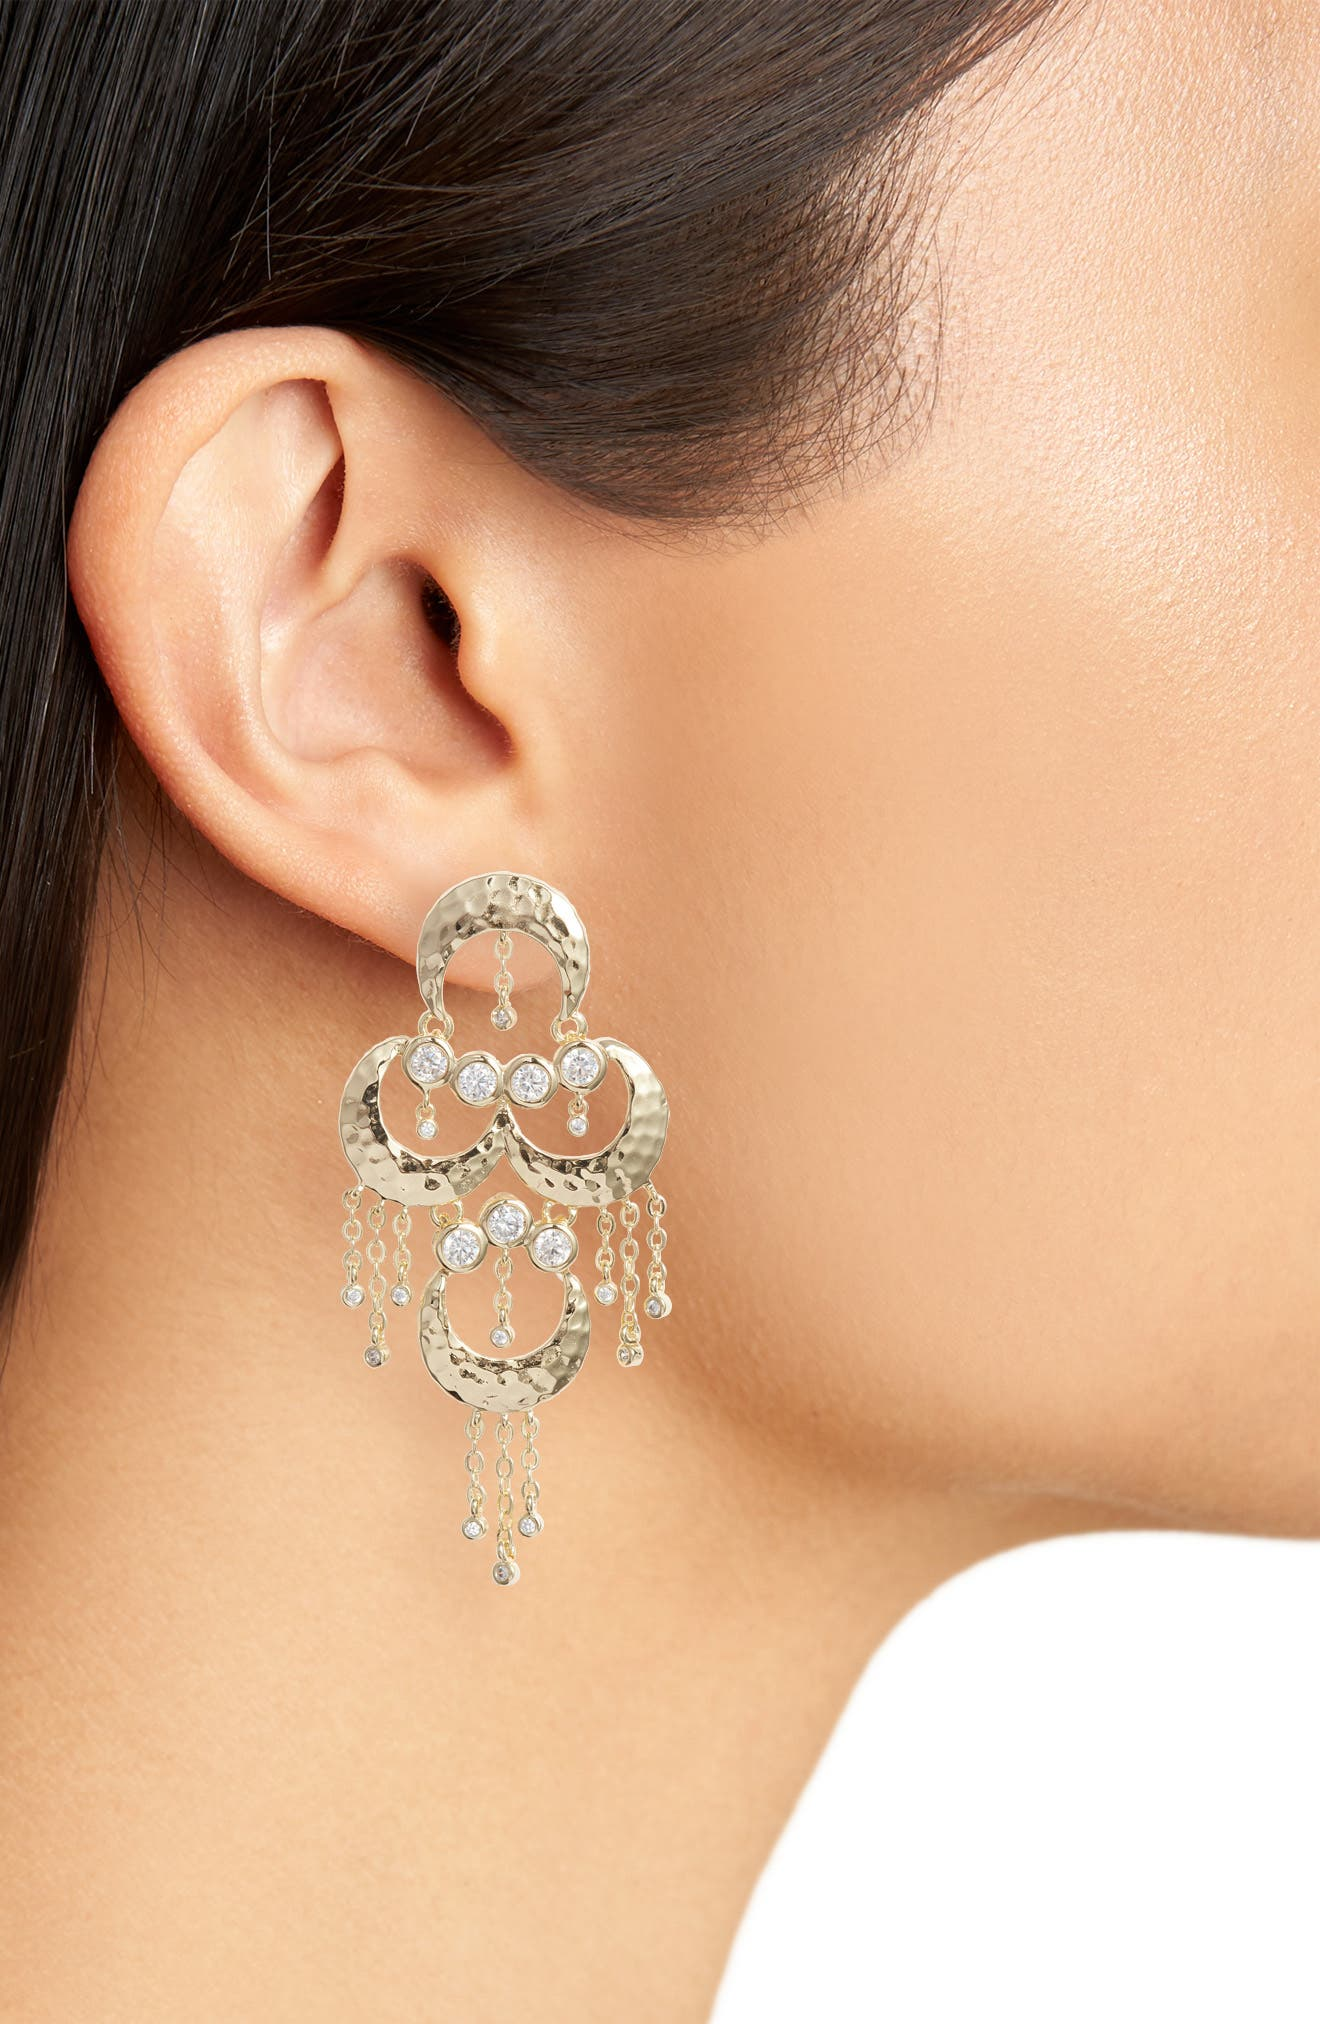 Tran Baby Chandelier Earrings,                             Alternate thumbnail 2, color,                             GOLD/ WHITE CZ